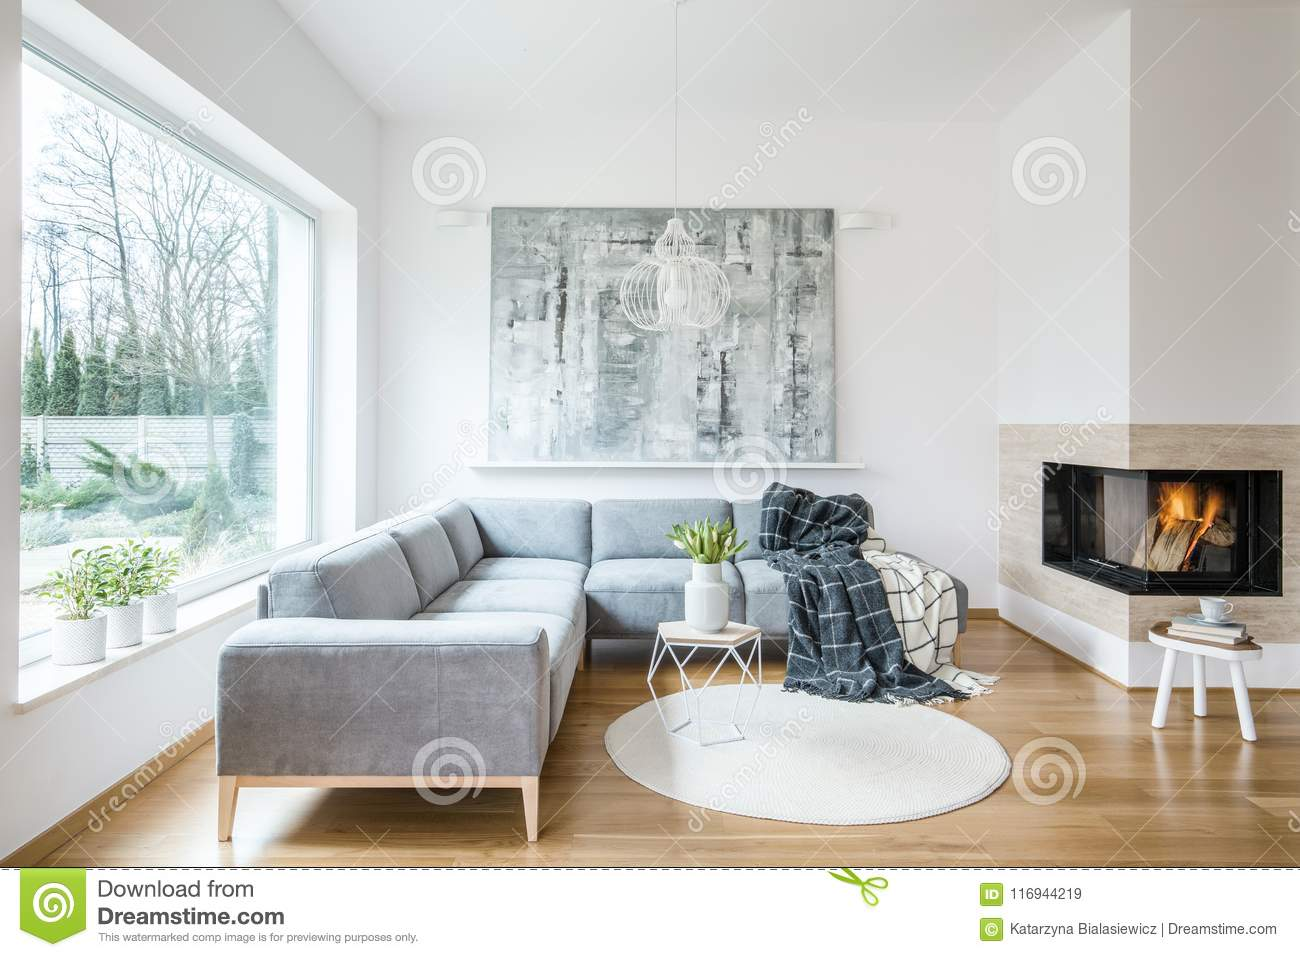 White sitting room interior with corner grey sofa, tulips in vase placed on end table, fireplace and modern art painting